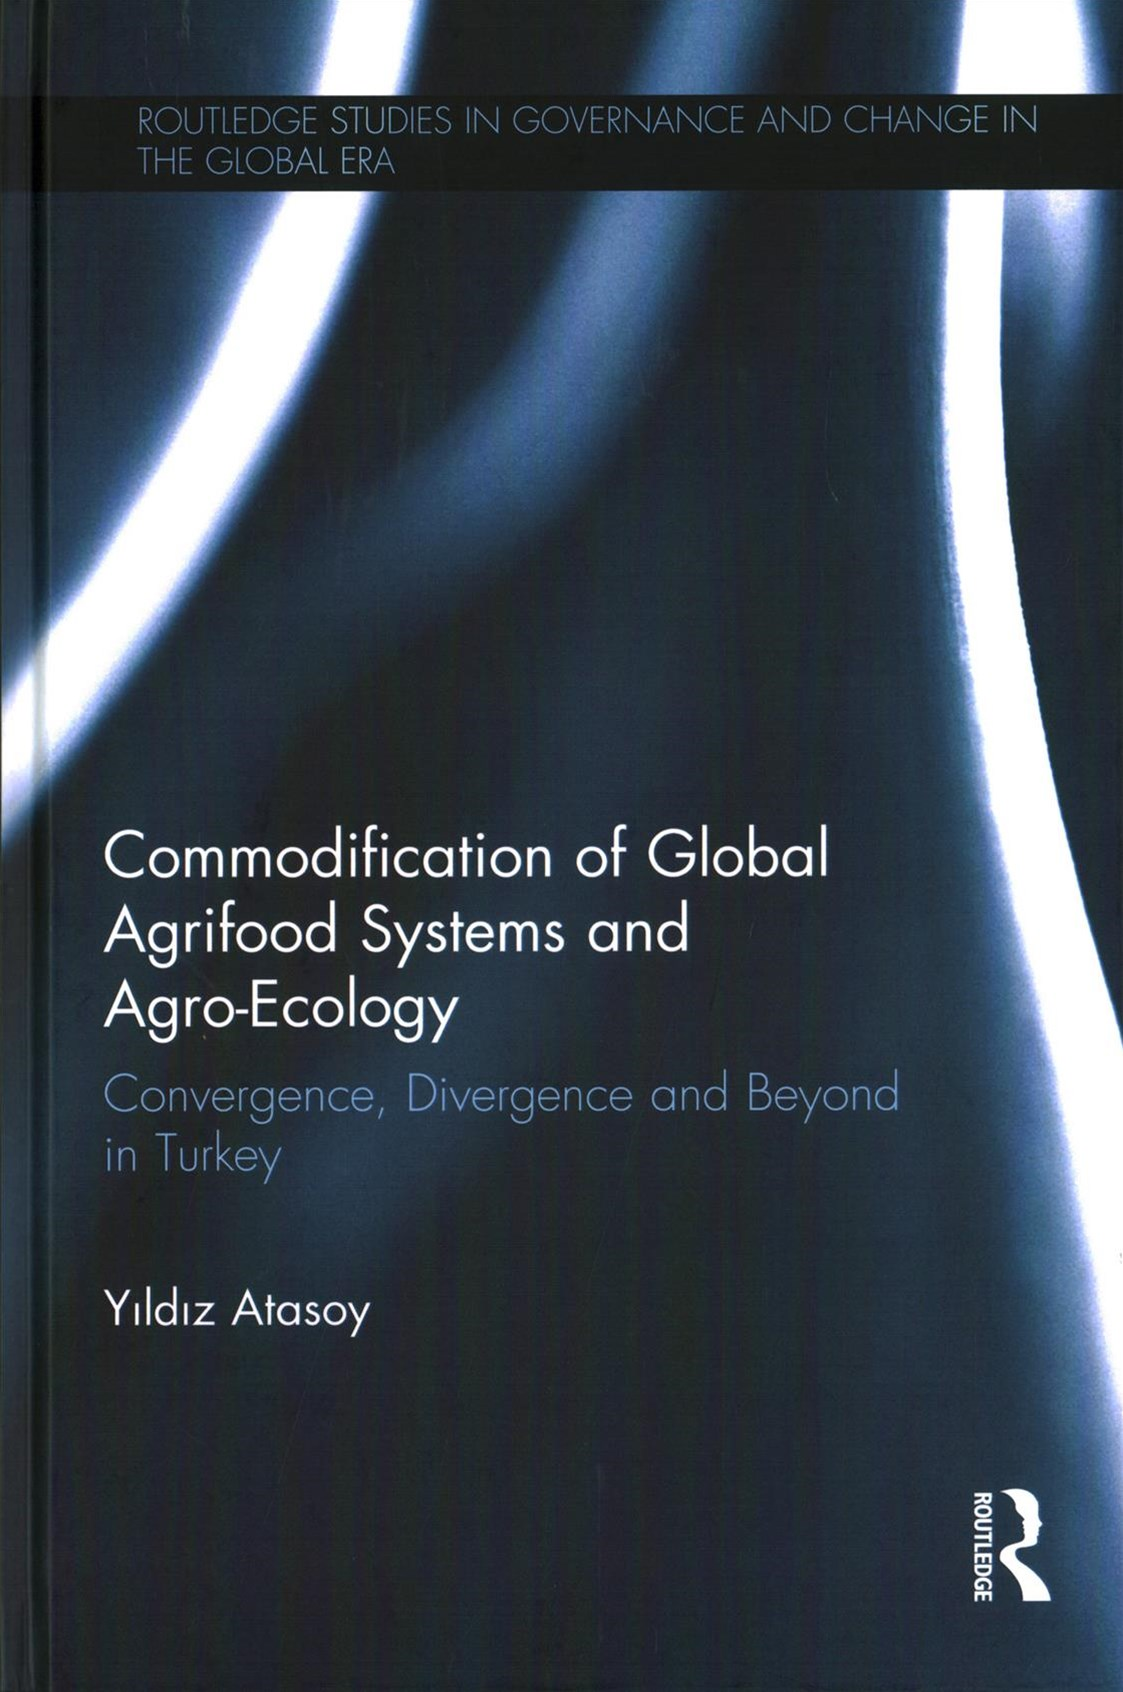 Commodification of Global Agrifood Systems and Agro-Ecology